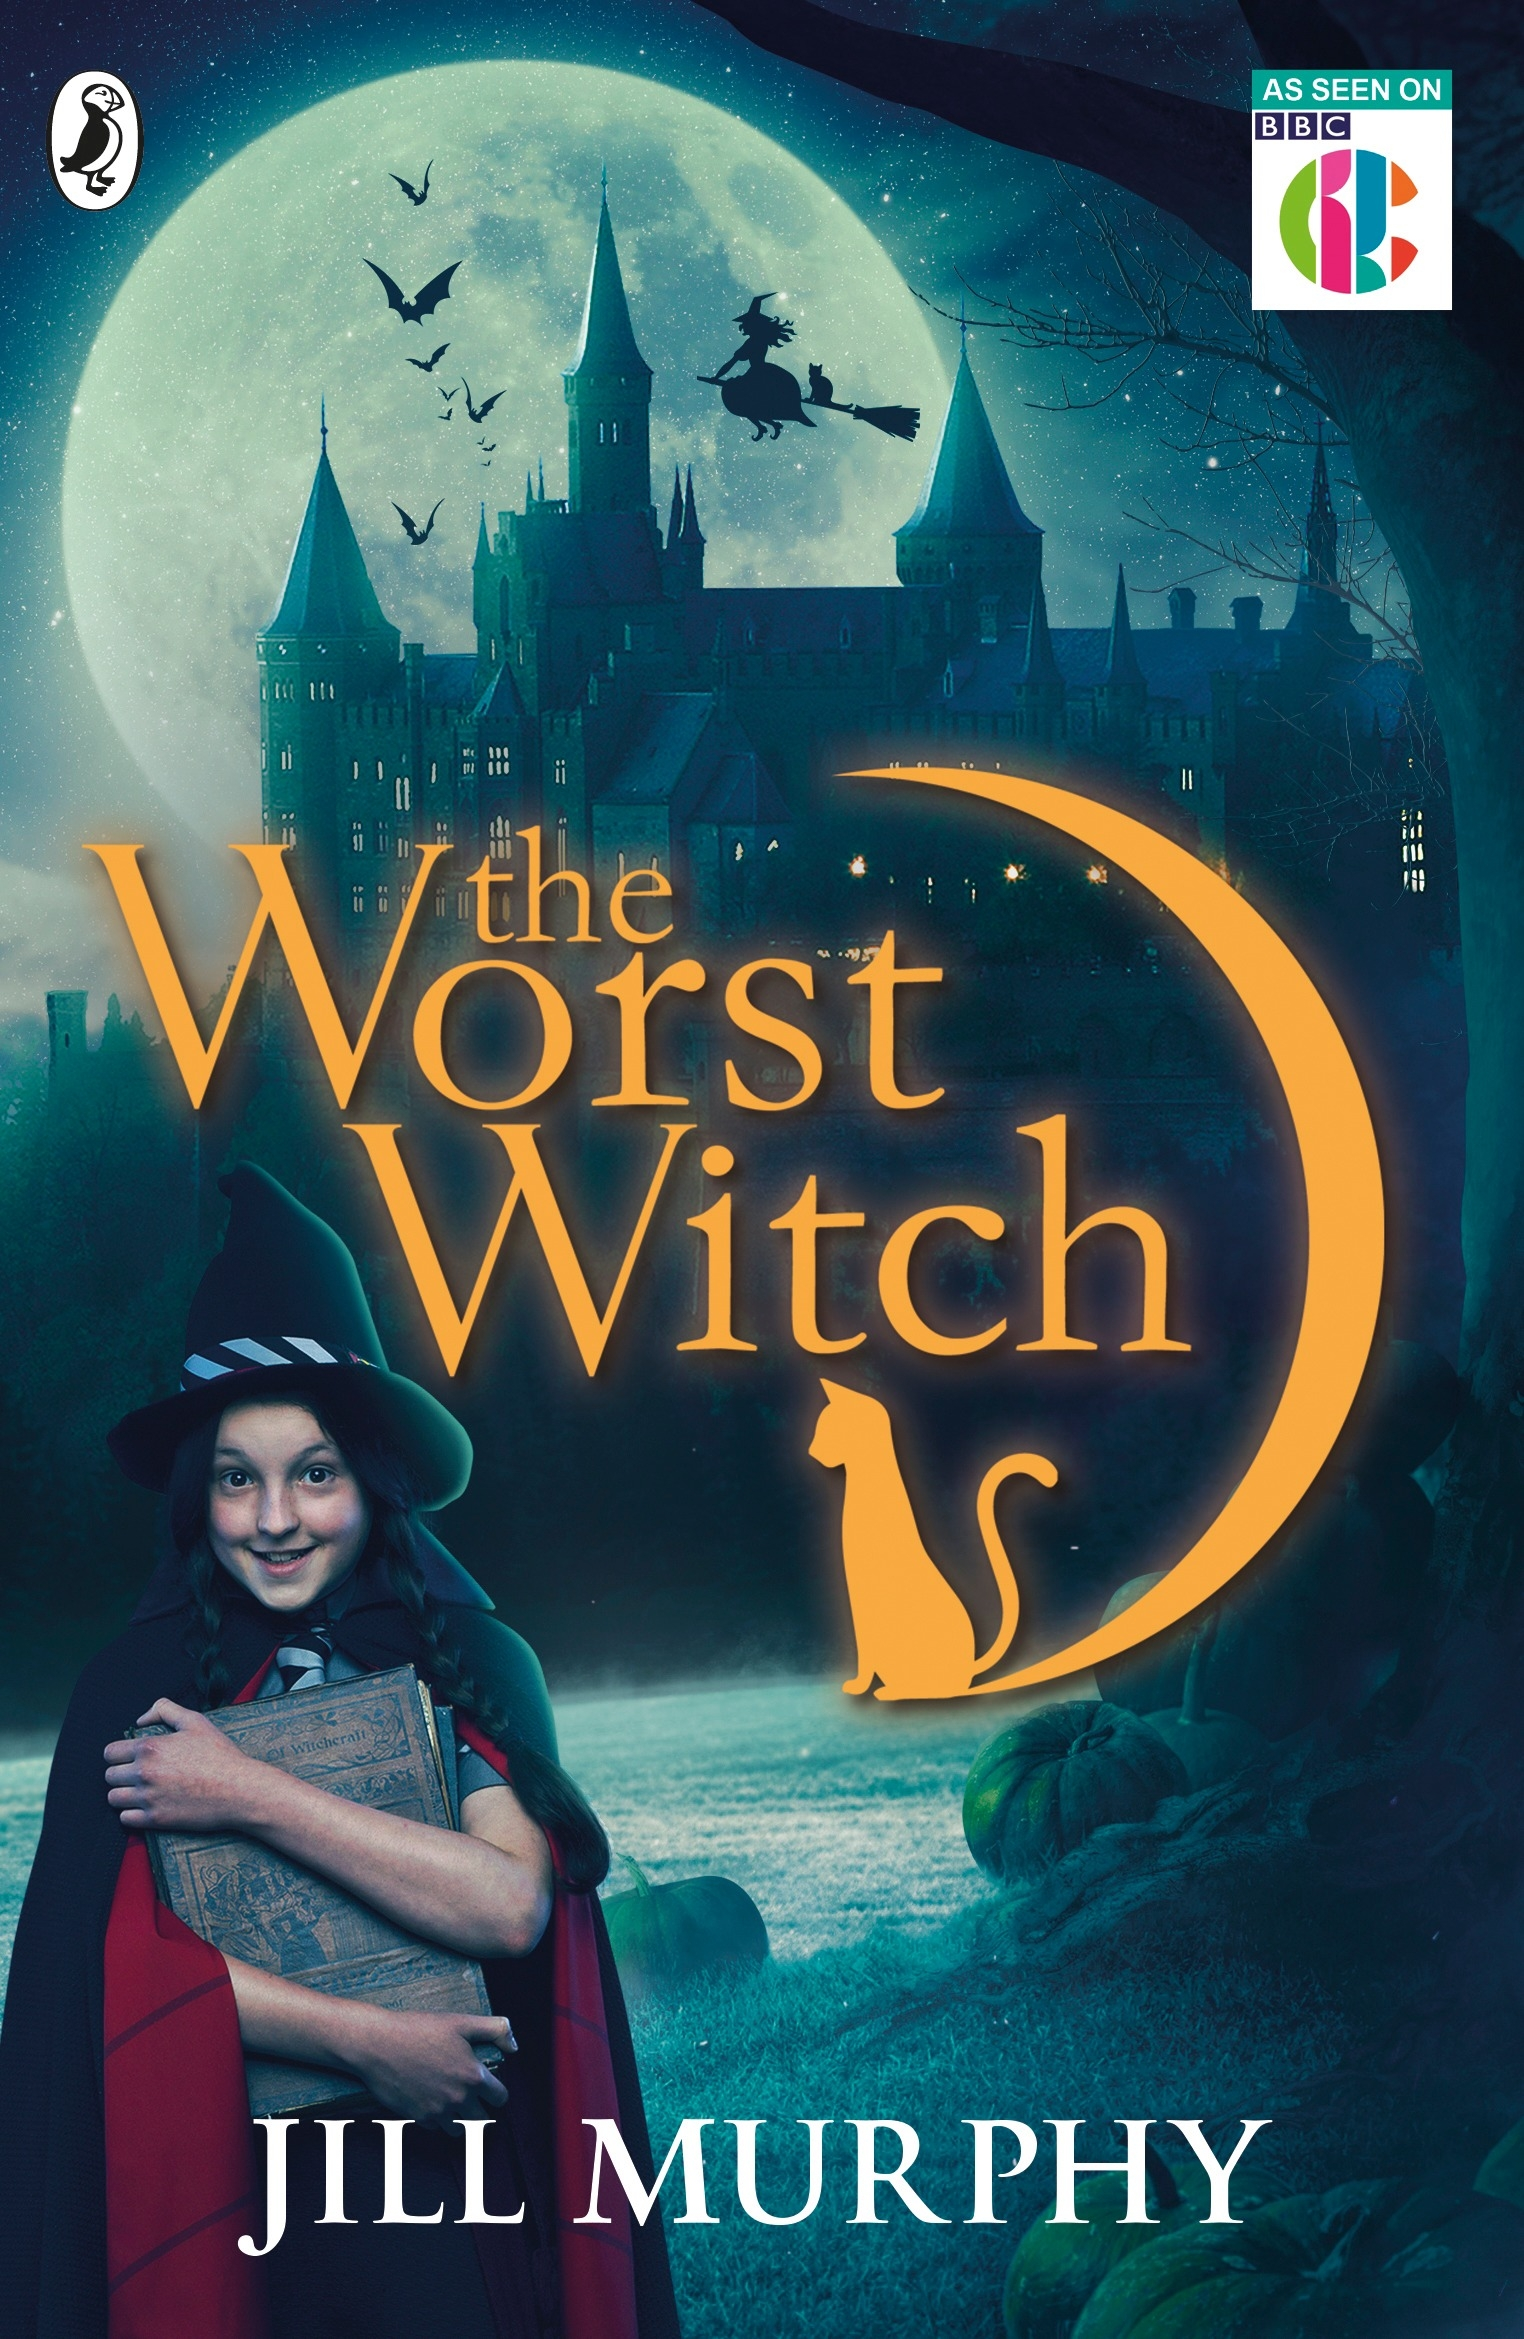 The Worst Witch Tv Tie In By Jill Murphy Penguin Books